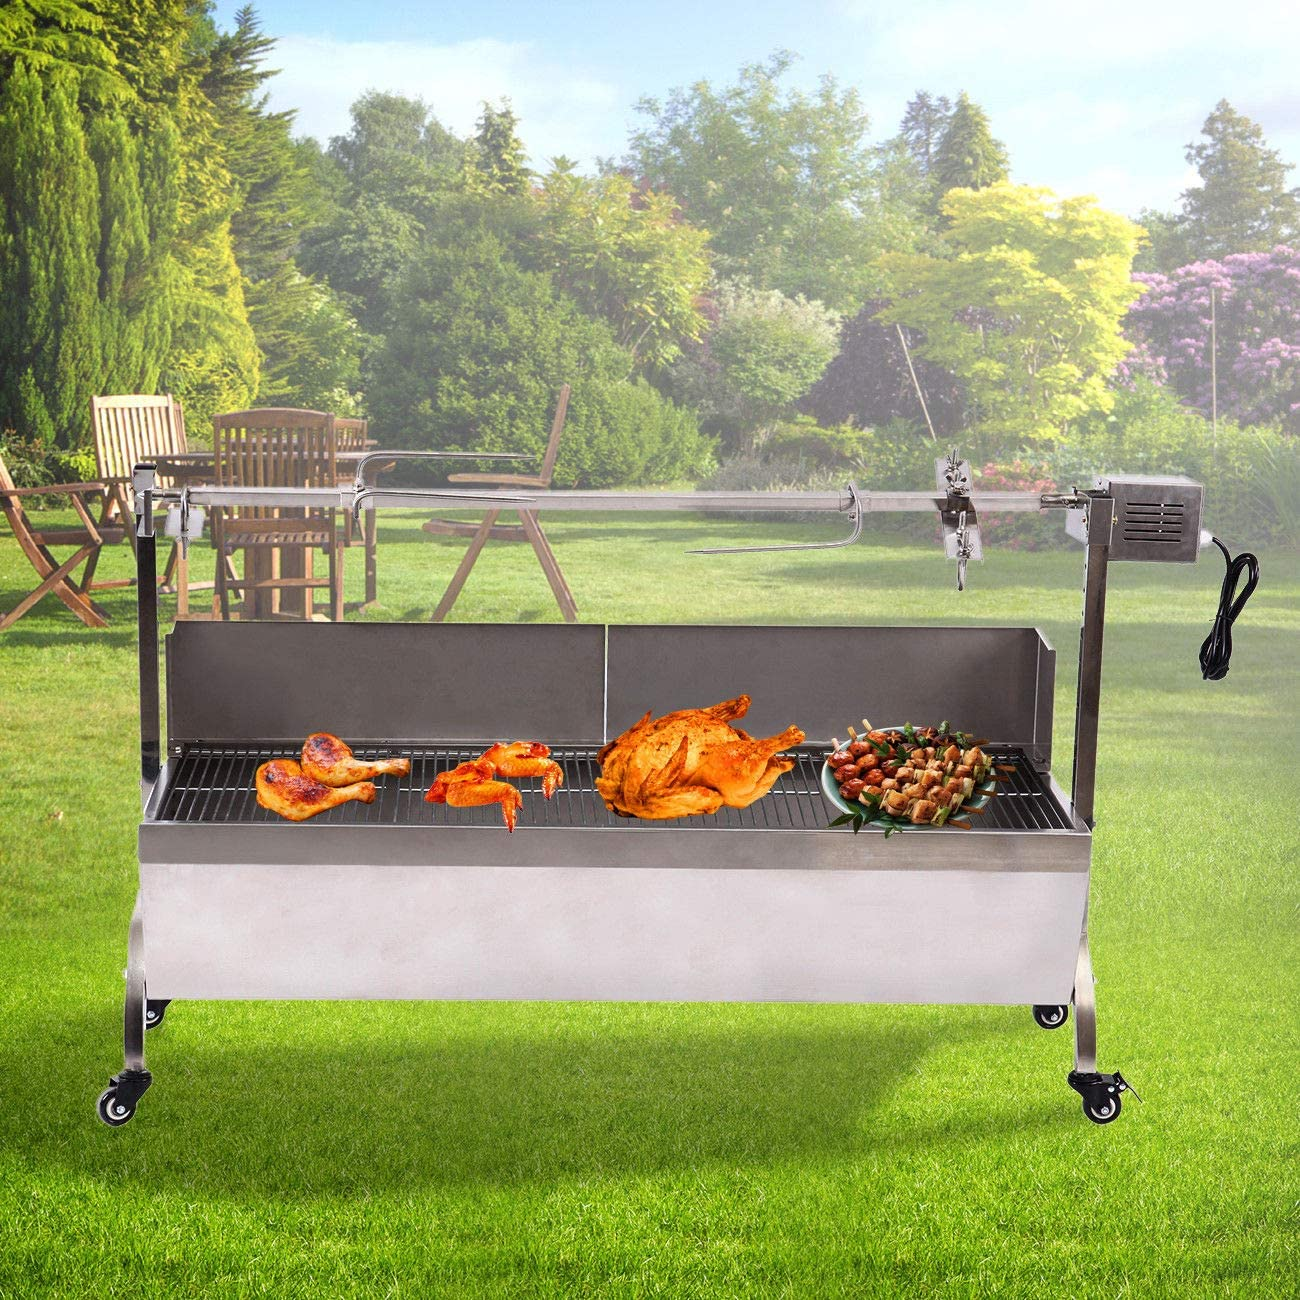 TryE Rotisserie Roaster Grill Skewer Spit Stainless Steel Hog Roasting Machine Charcoal BBQ Pig Lamb